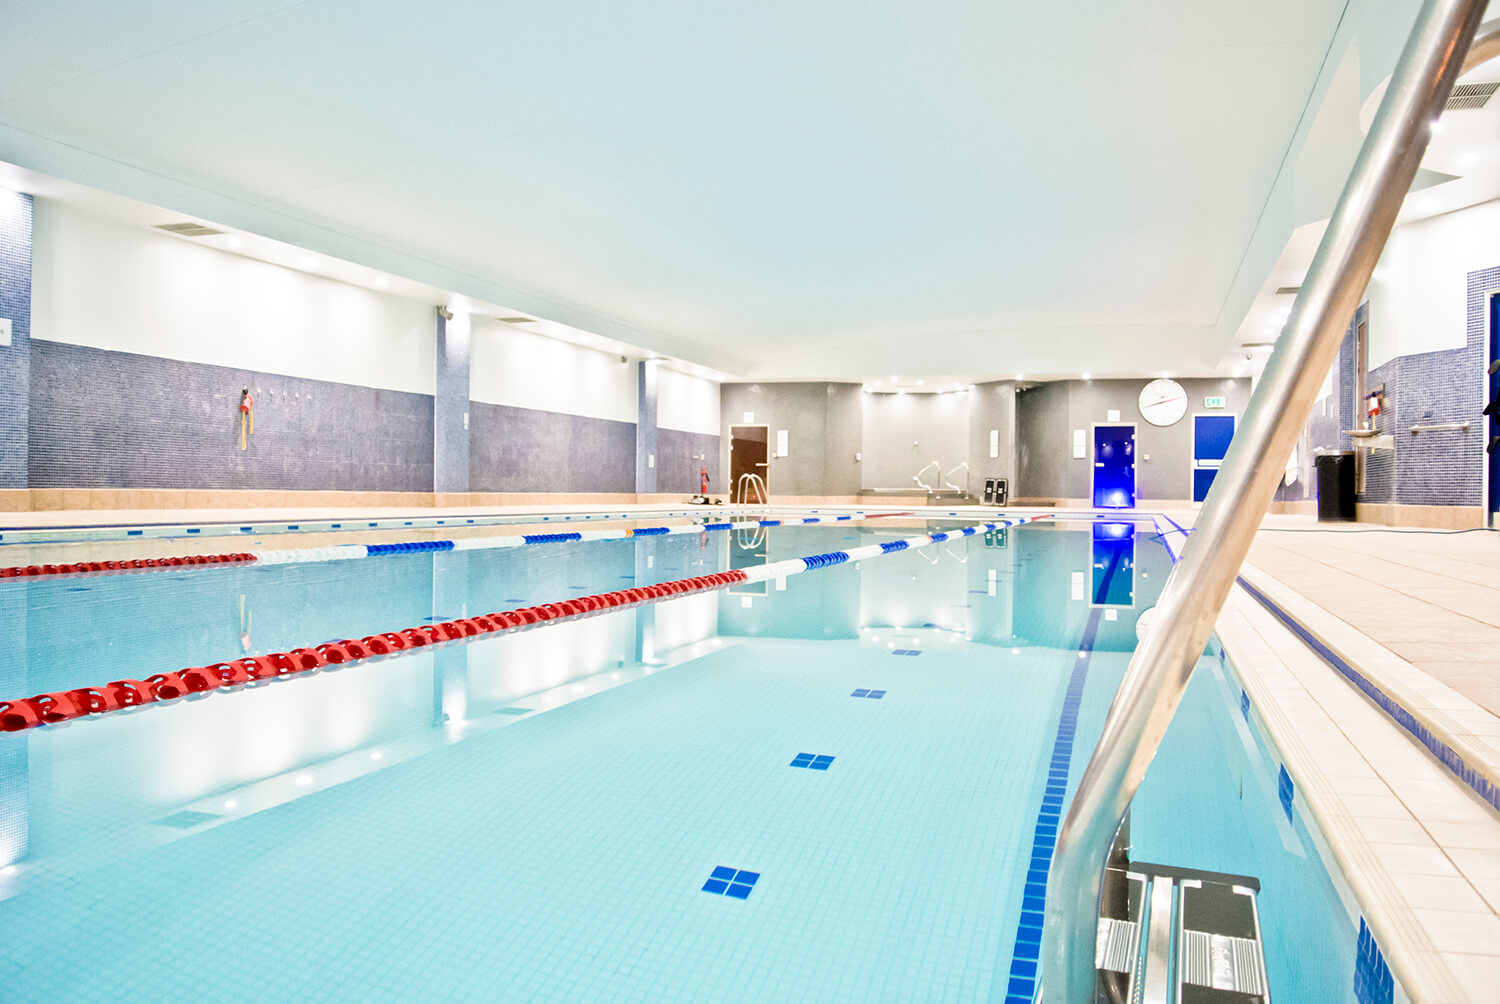 Nuffield health covent garden opening times garden ftempo - Bromley swimming pool opening times ...